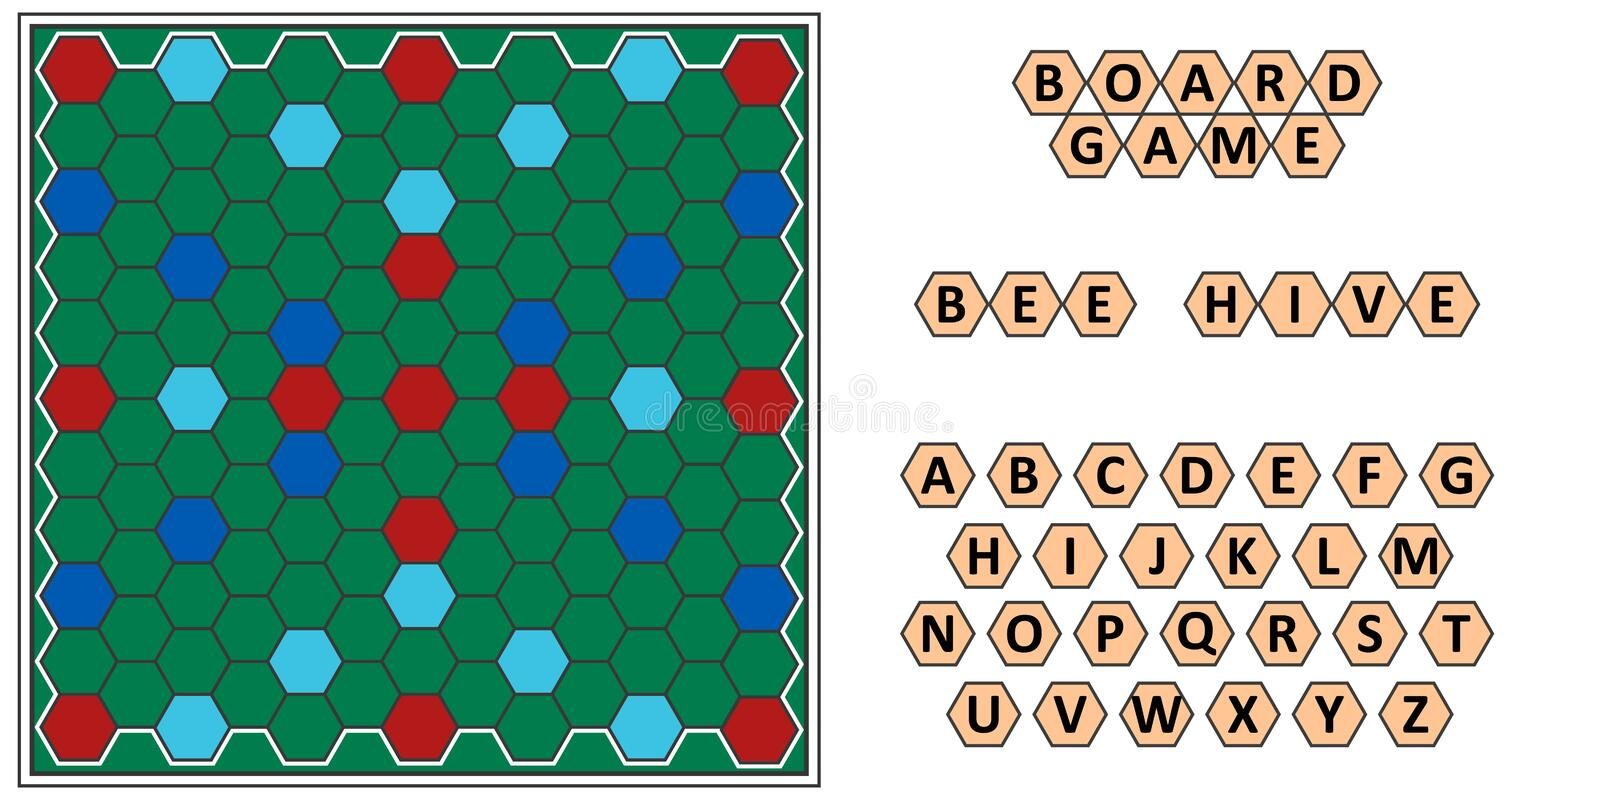 Board game Bee hive, developing erudition, bee honeycomb board and letters. Scrabble, vector board game for the family to play at night, writing words from royalty free illustration